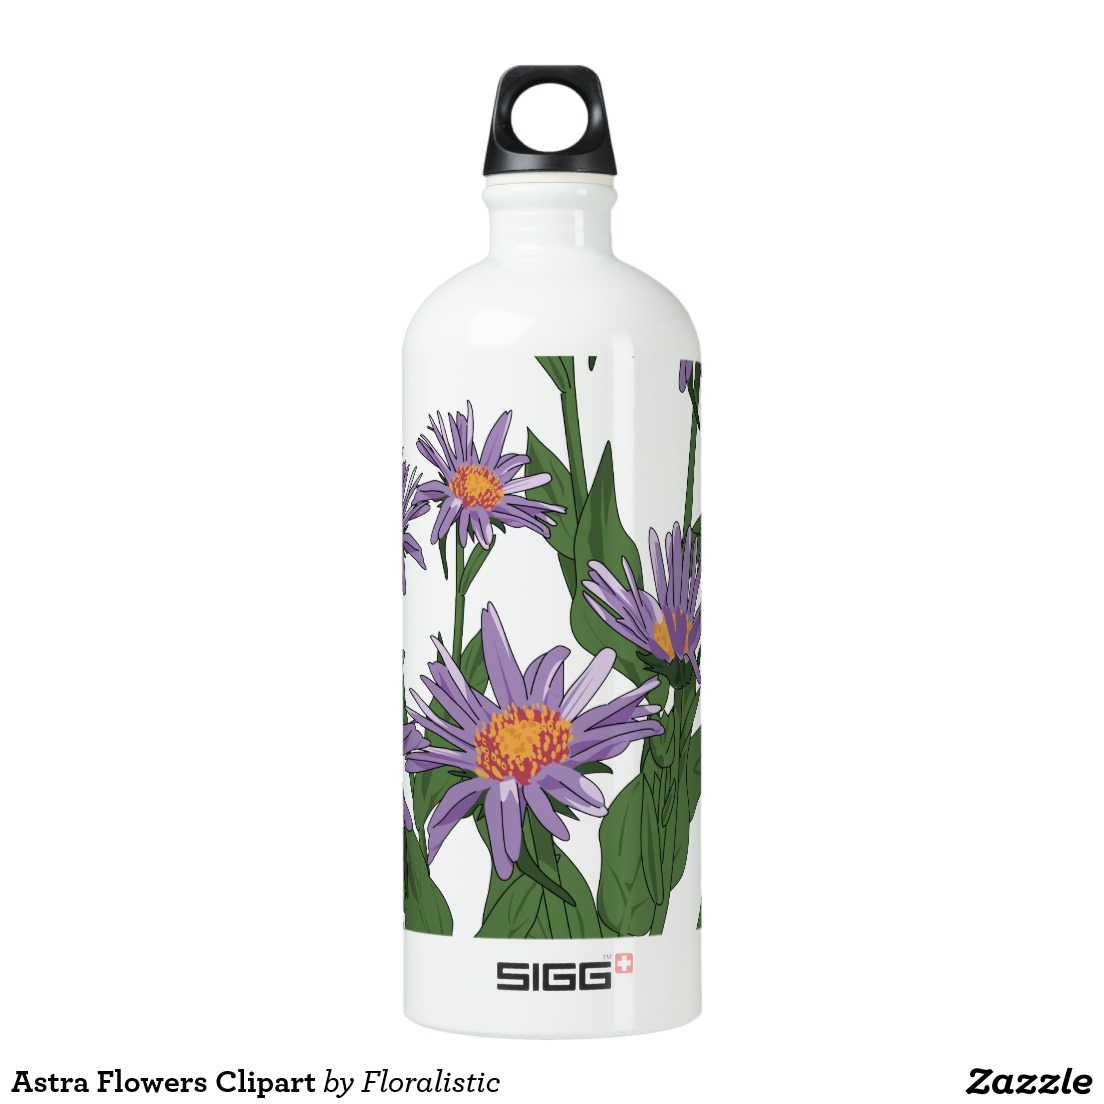 Astra Flowers Clipart Aluminum Water Bottle.